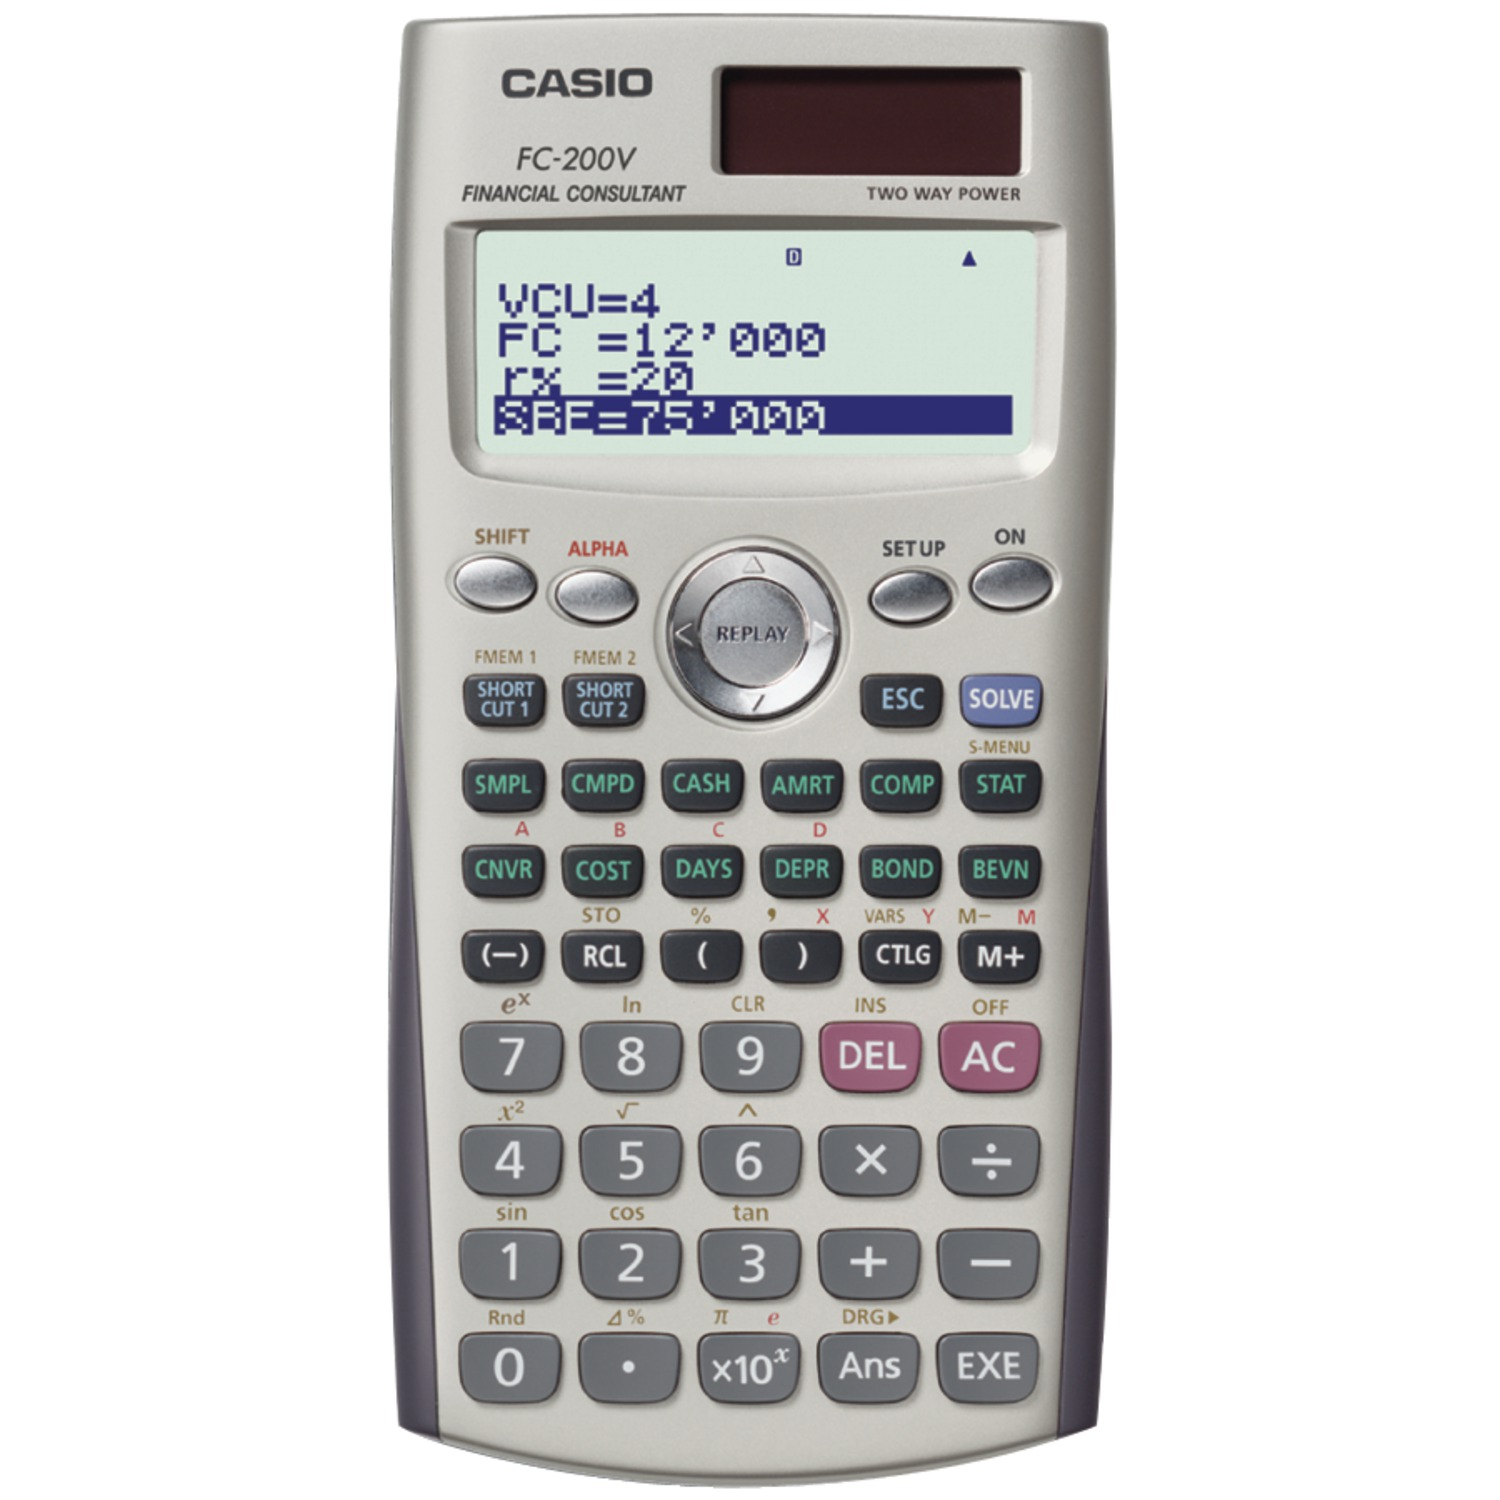 CASIO� FC-200V Financial CALCULATOR